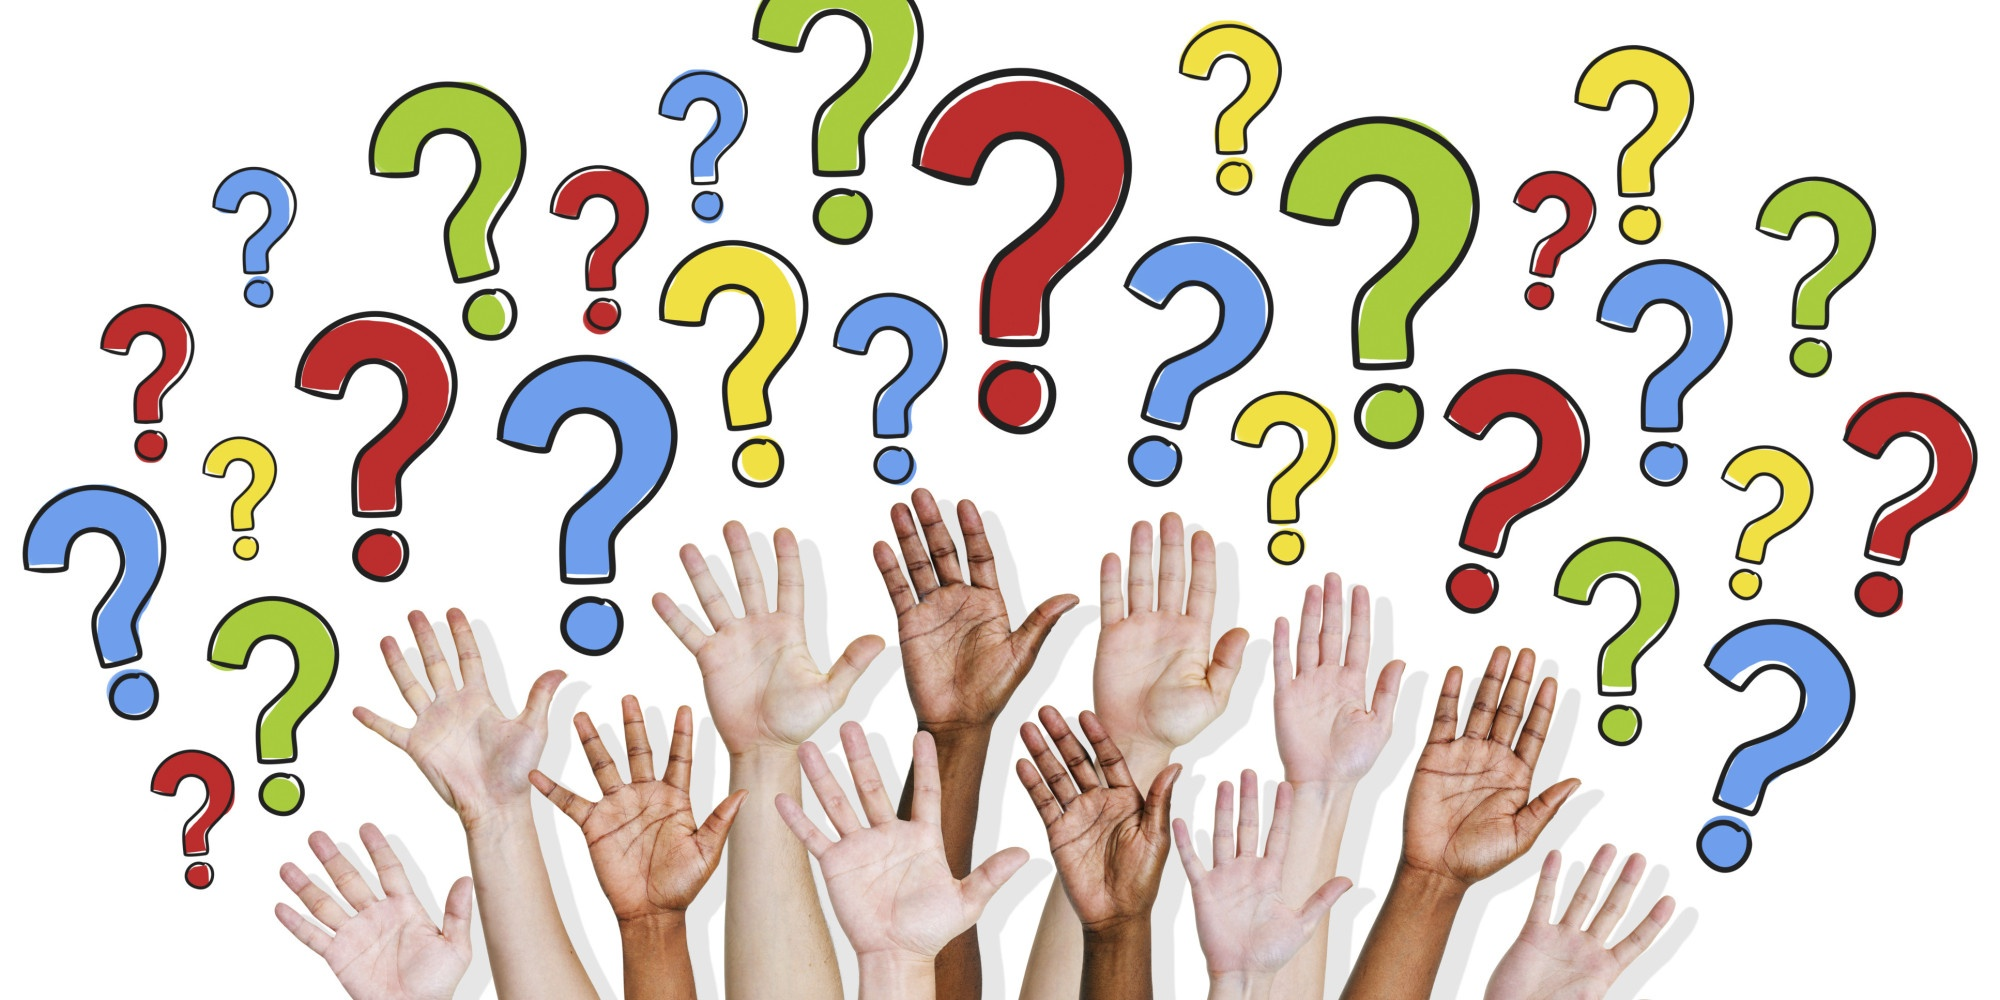 brand manager essential questions